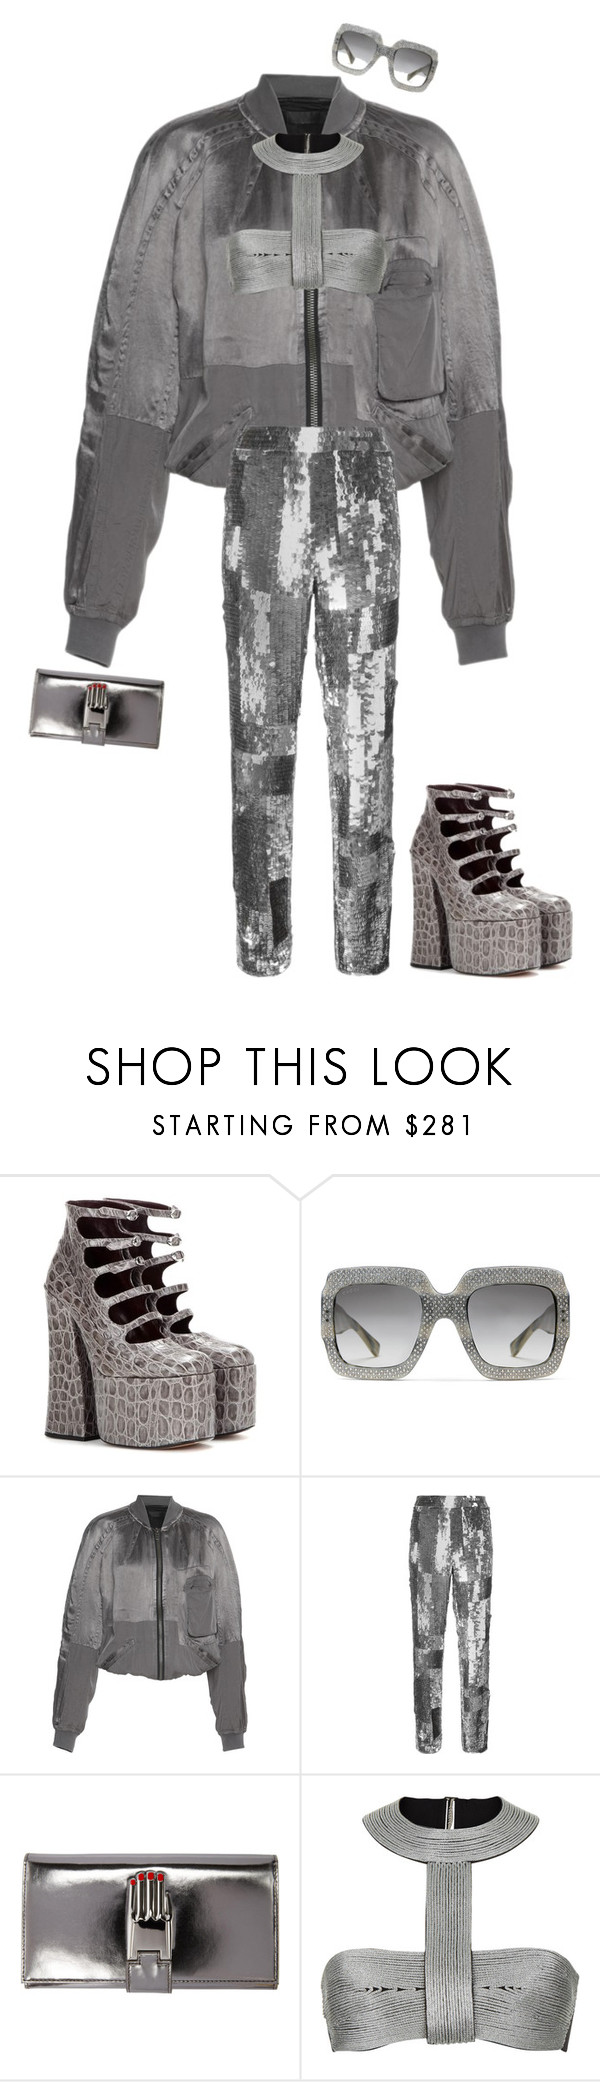 """""""Silver Lining 🌪🏳"""" by thecasegirl ❤ liked on Polyvore featuring Marc Jacobs, Gucci, Maiyet, Chloé and Opening Ceremony"""